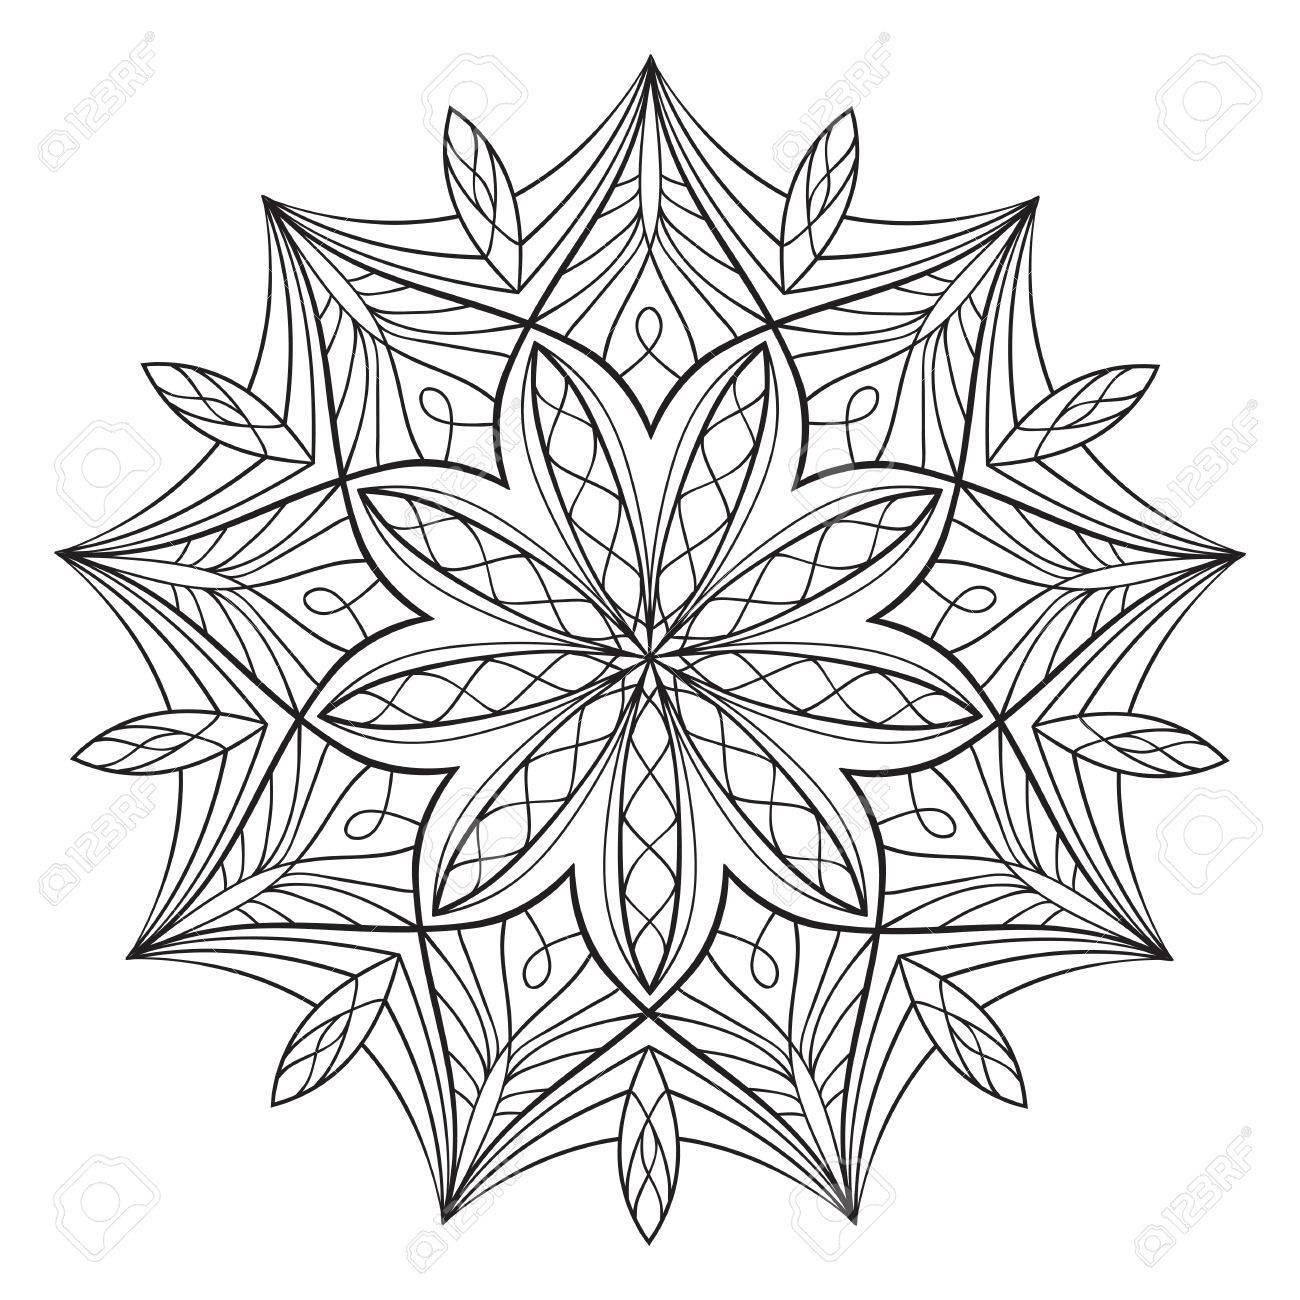 Coloring Book For Adults And Children Round Floral Mandala Element Anti Stress Relaxation